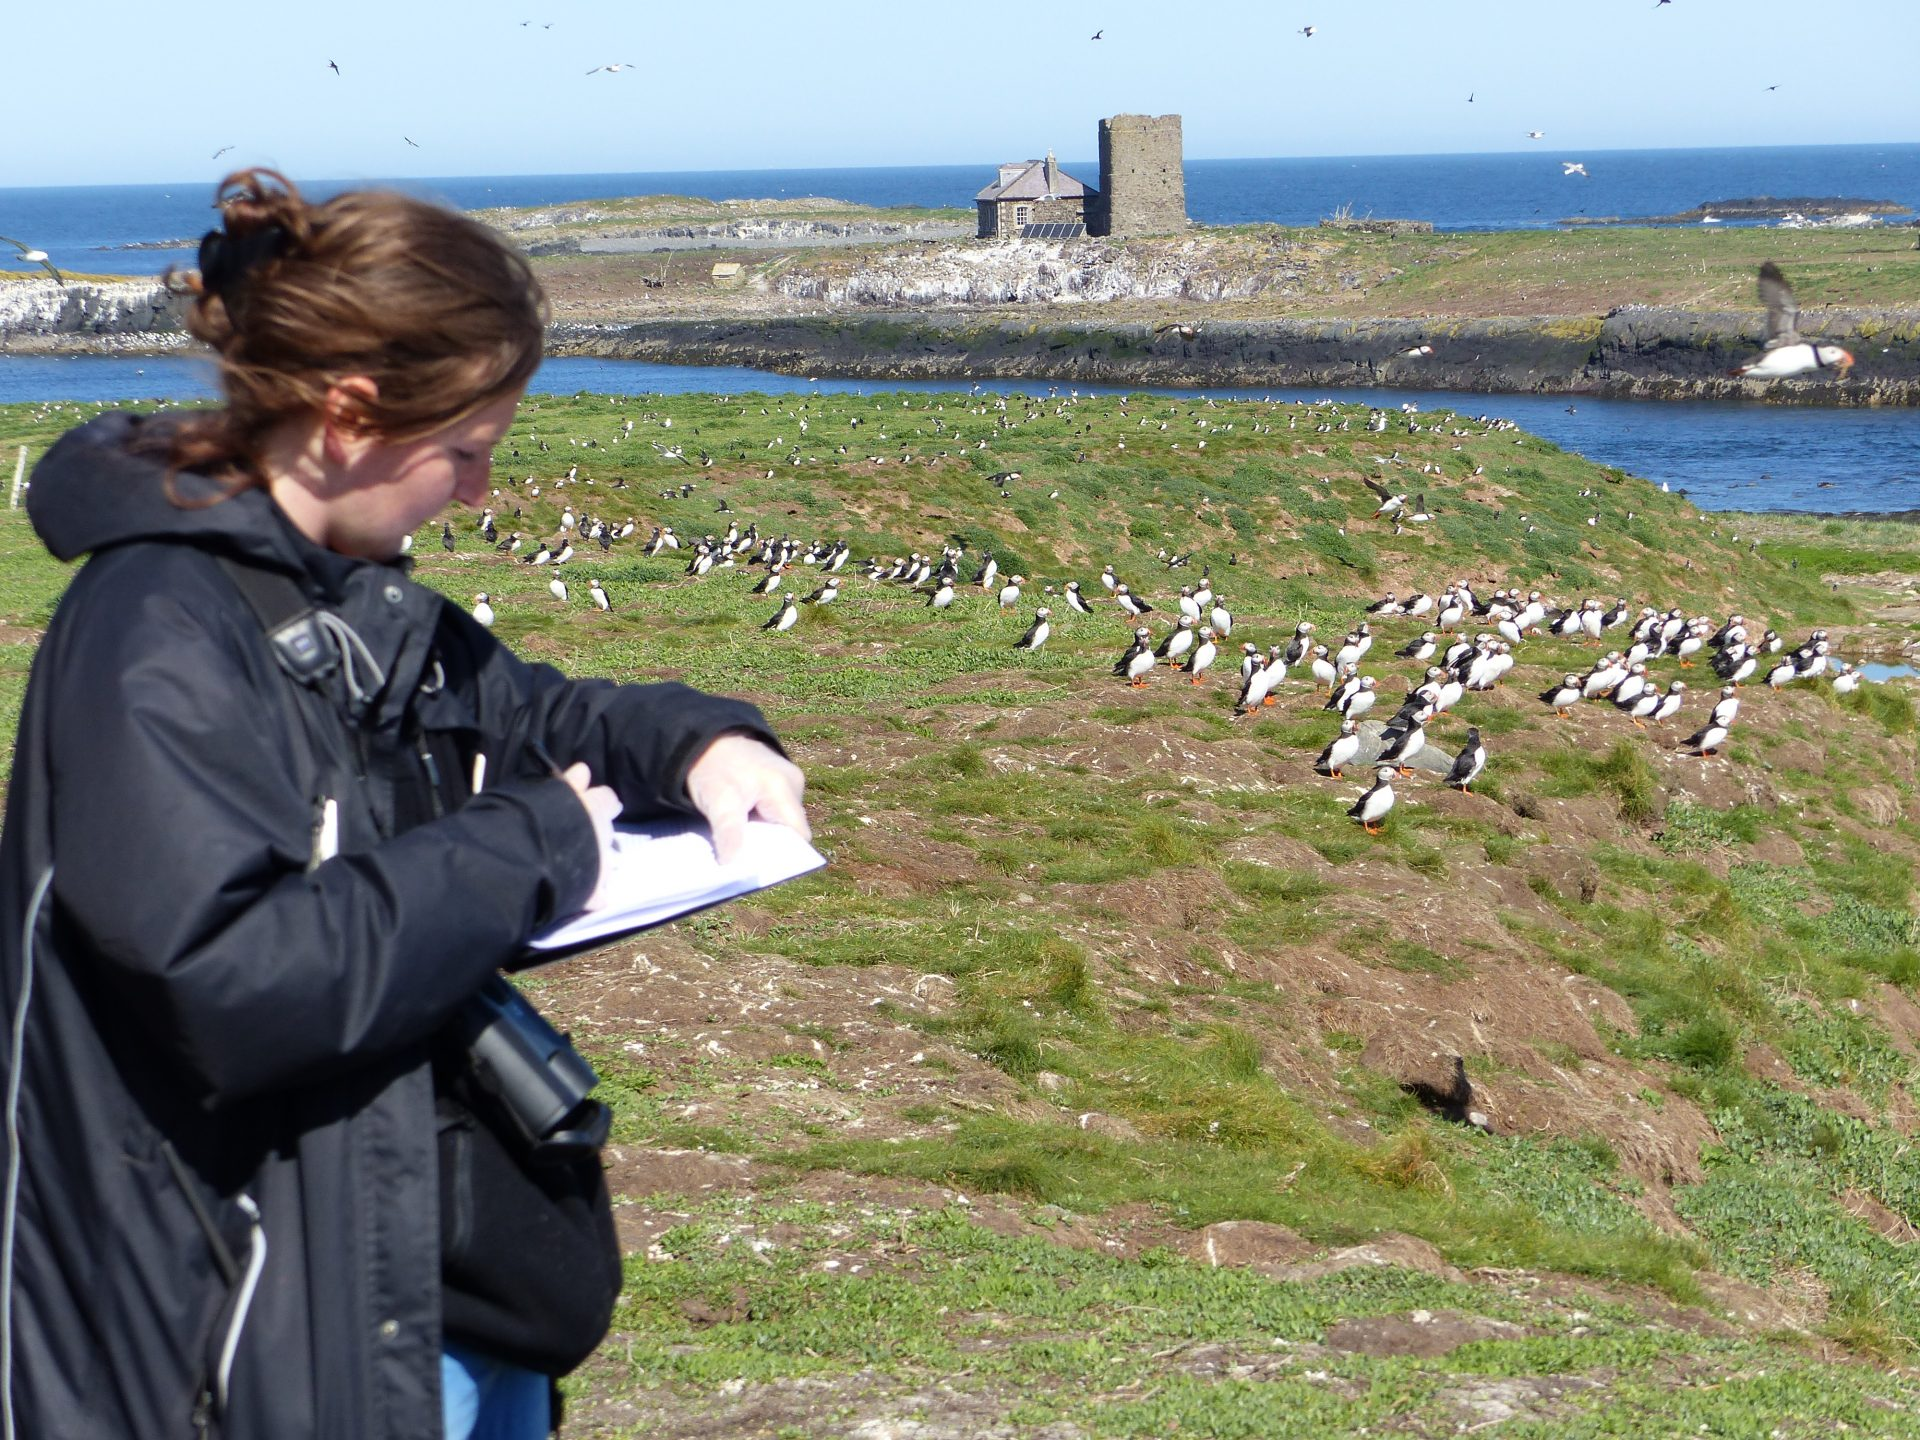 https://www.nationaltrust.org.uk/press-release/puffins-return-to-breed-on-the-farne-islands-in-strong-numbers